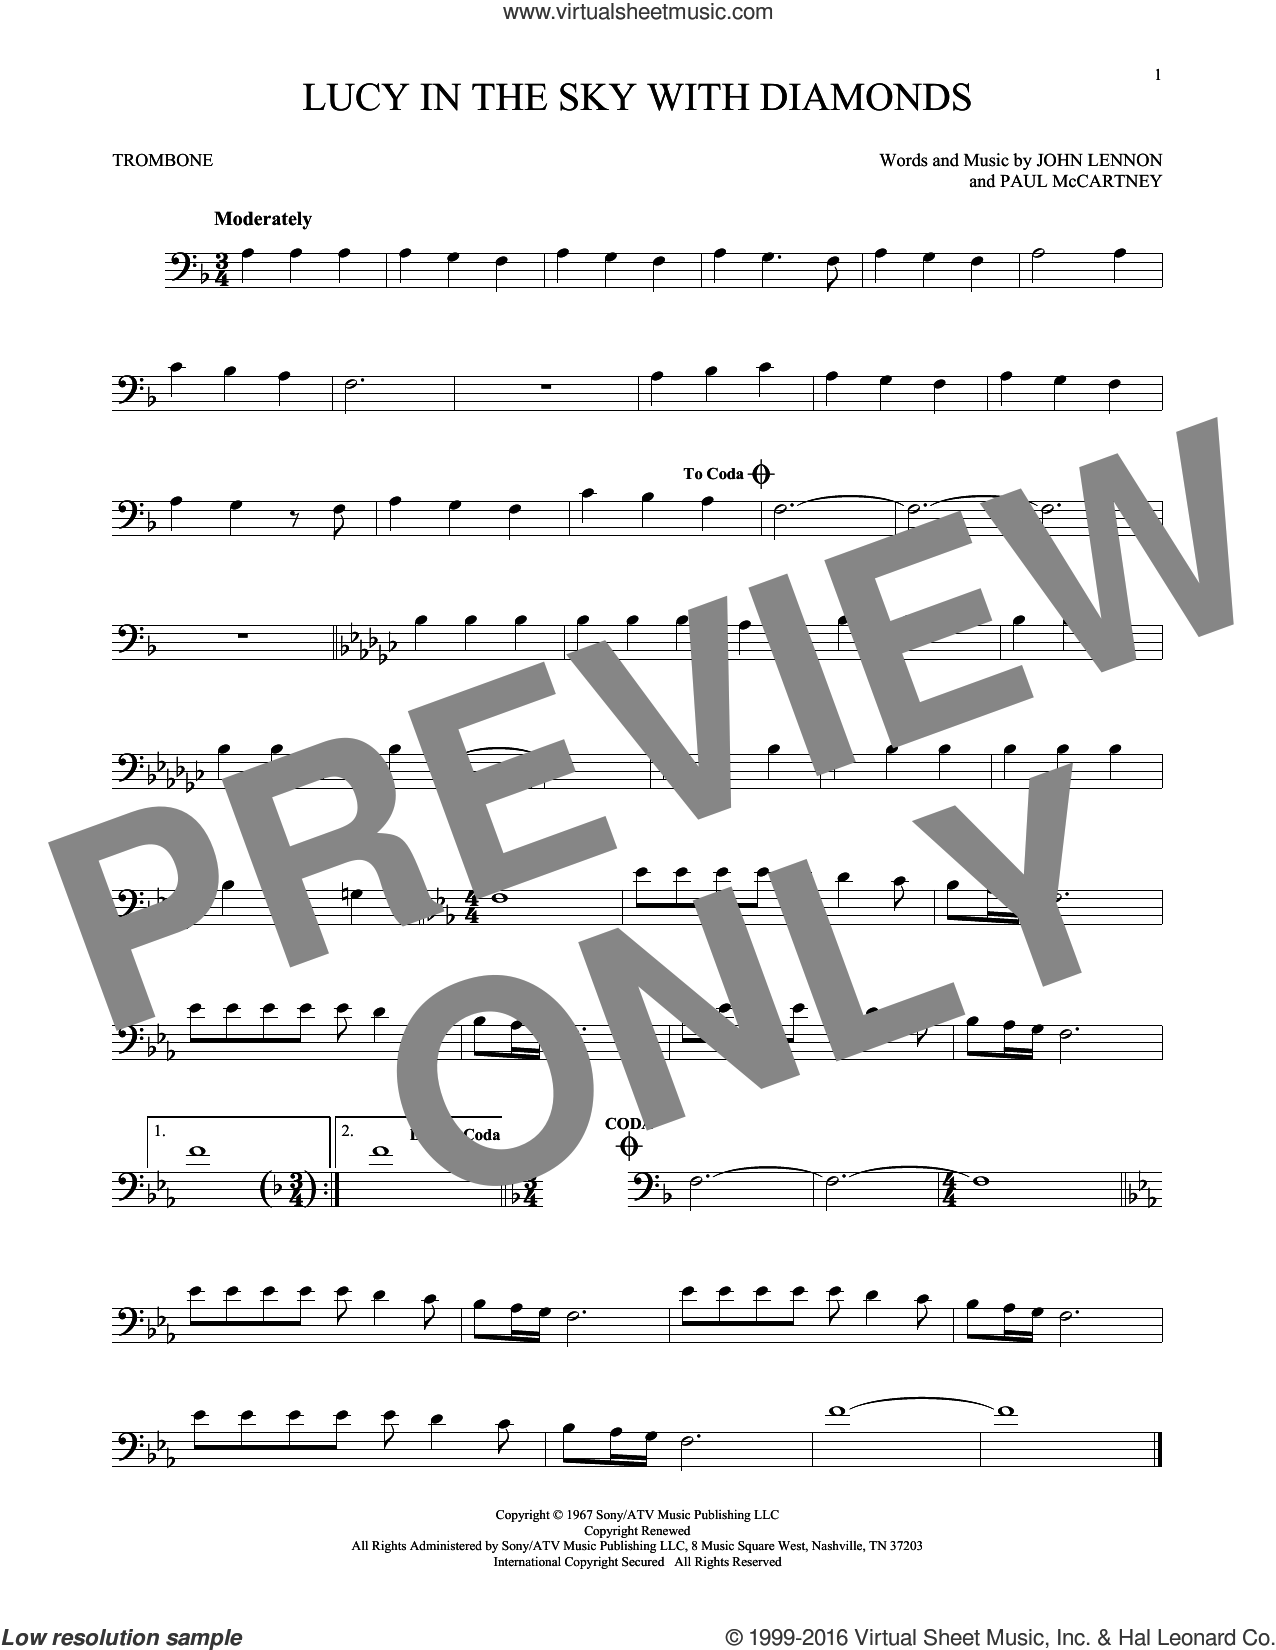 Lucy In The Sky With Diamonds sheet music for trombone solo by The Beatles, Elton John, John Lennon and Paul McCartney, intermediate skill level